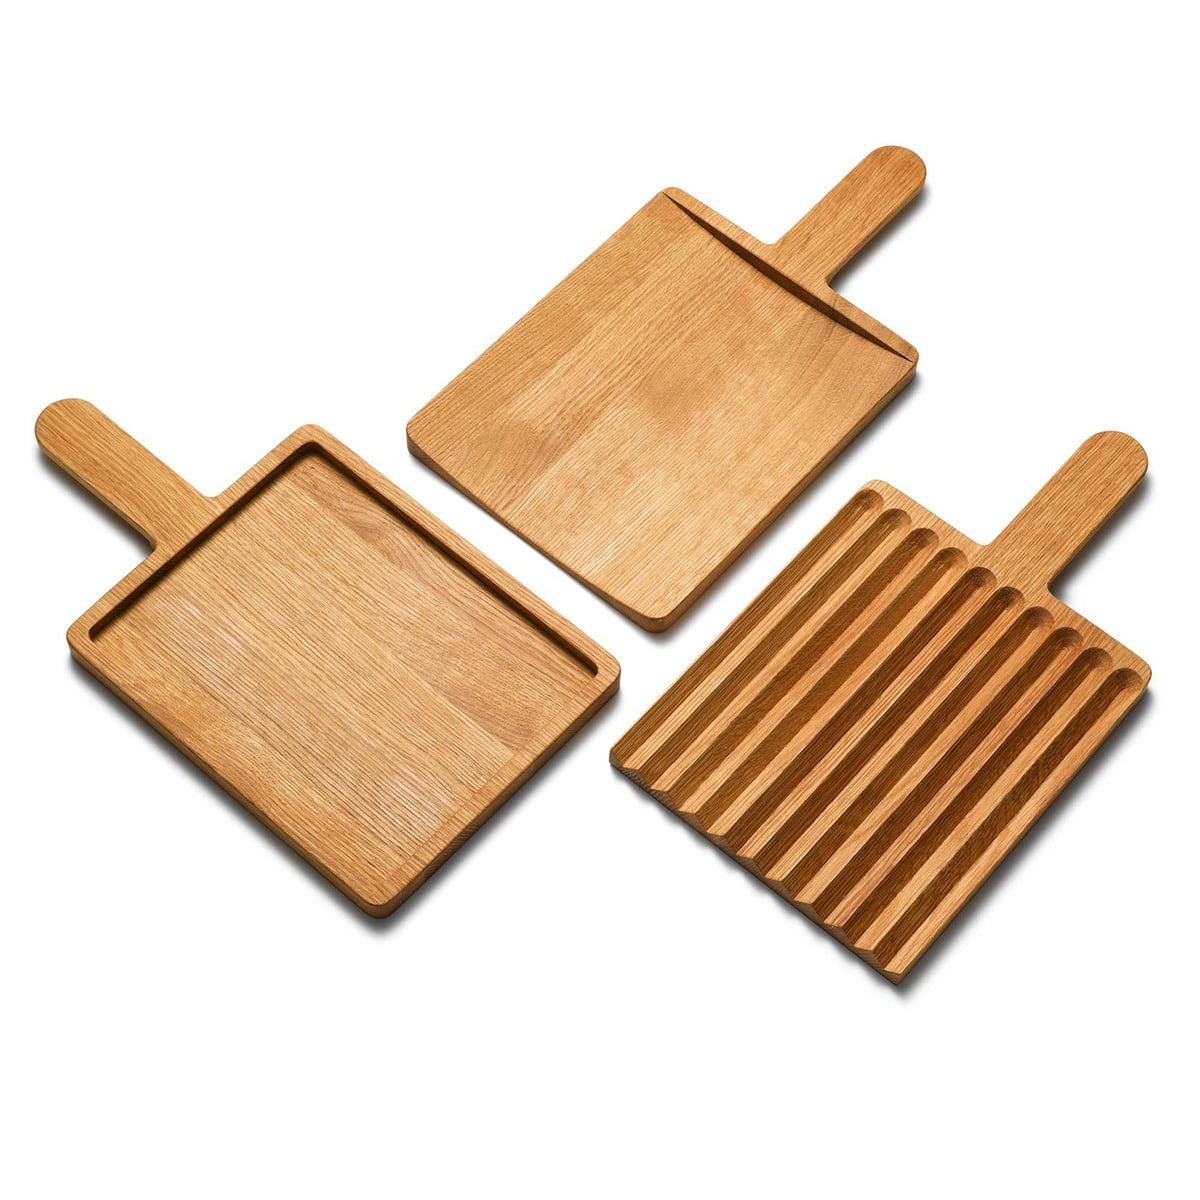 Https Www Connox Com Categories Kitchenware Cutlery Trays Utensil